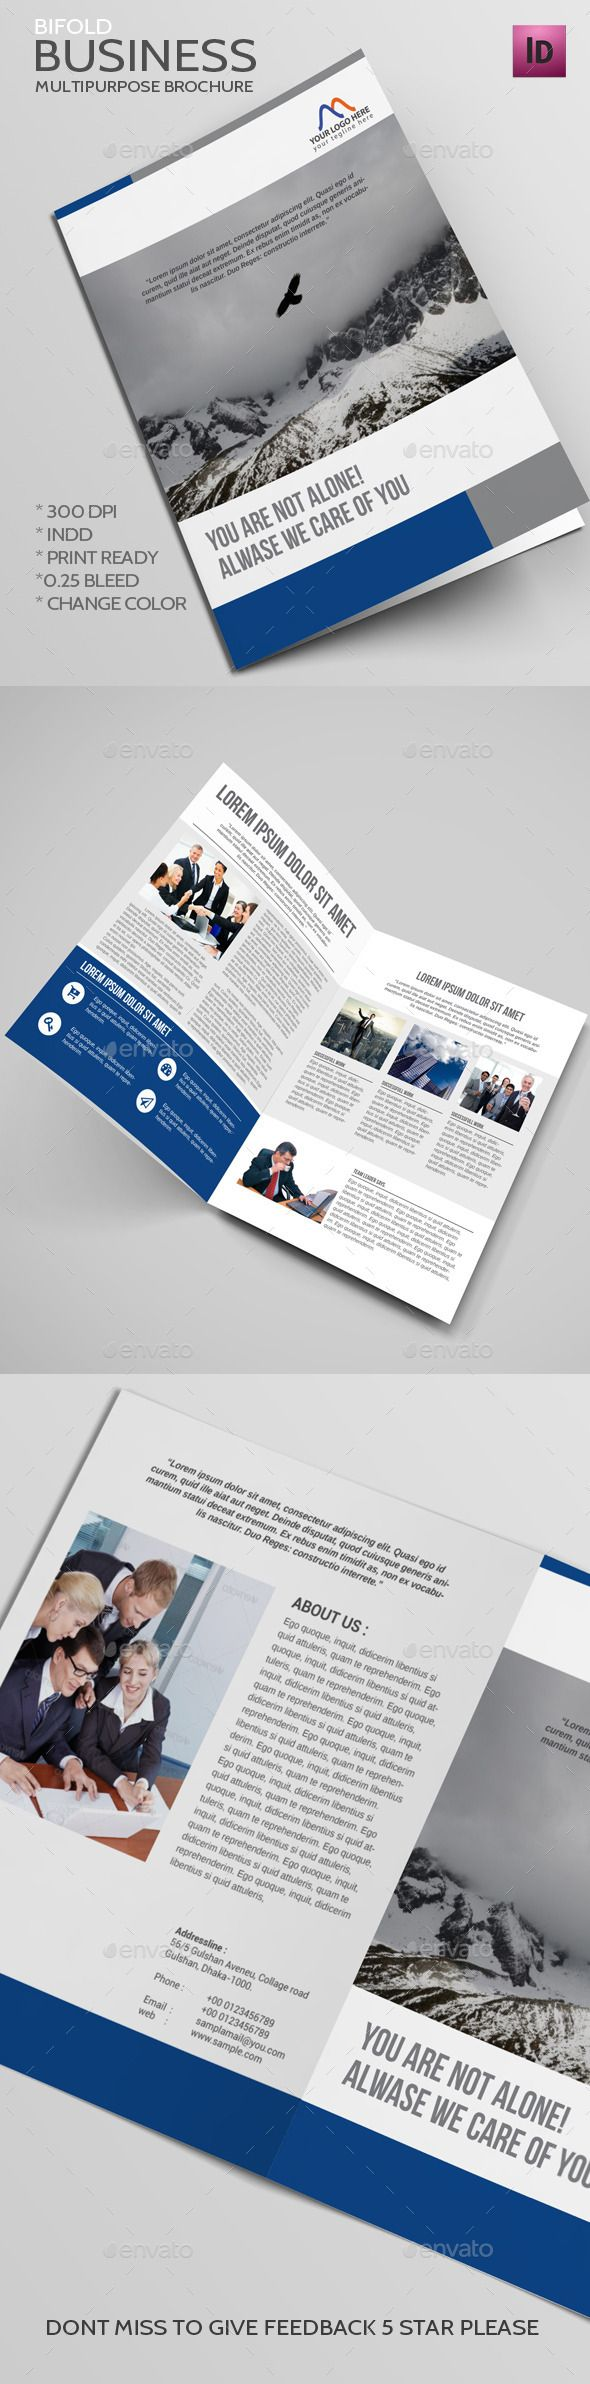 Bifold Business Brochure Template #design #print Download: http://graphicriver.net/item/bifold-business-brochure/11979795?ref=ksioks